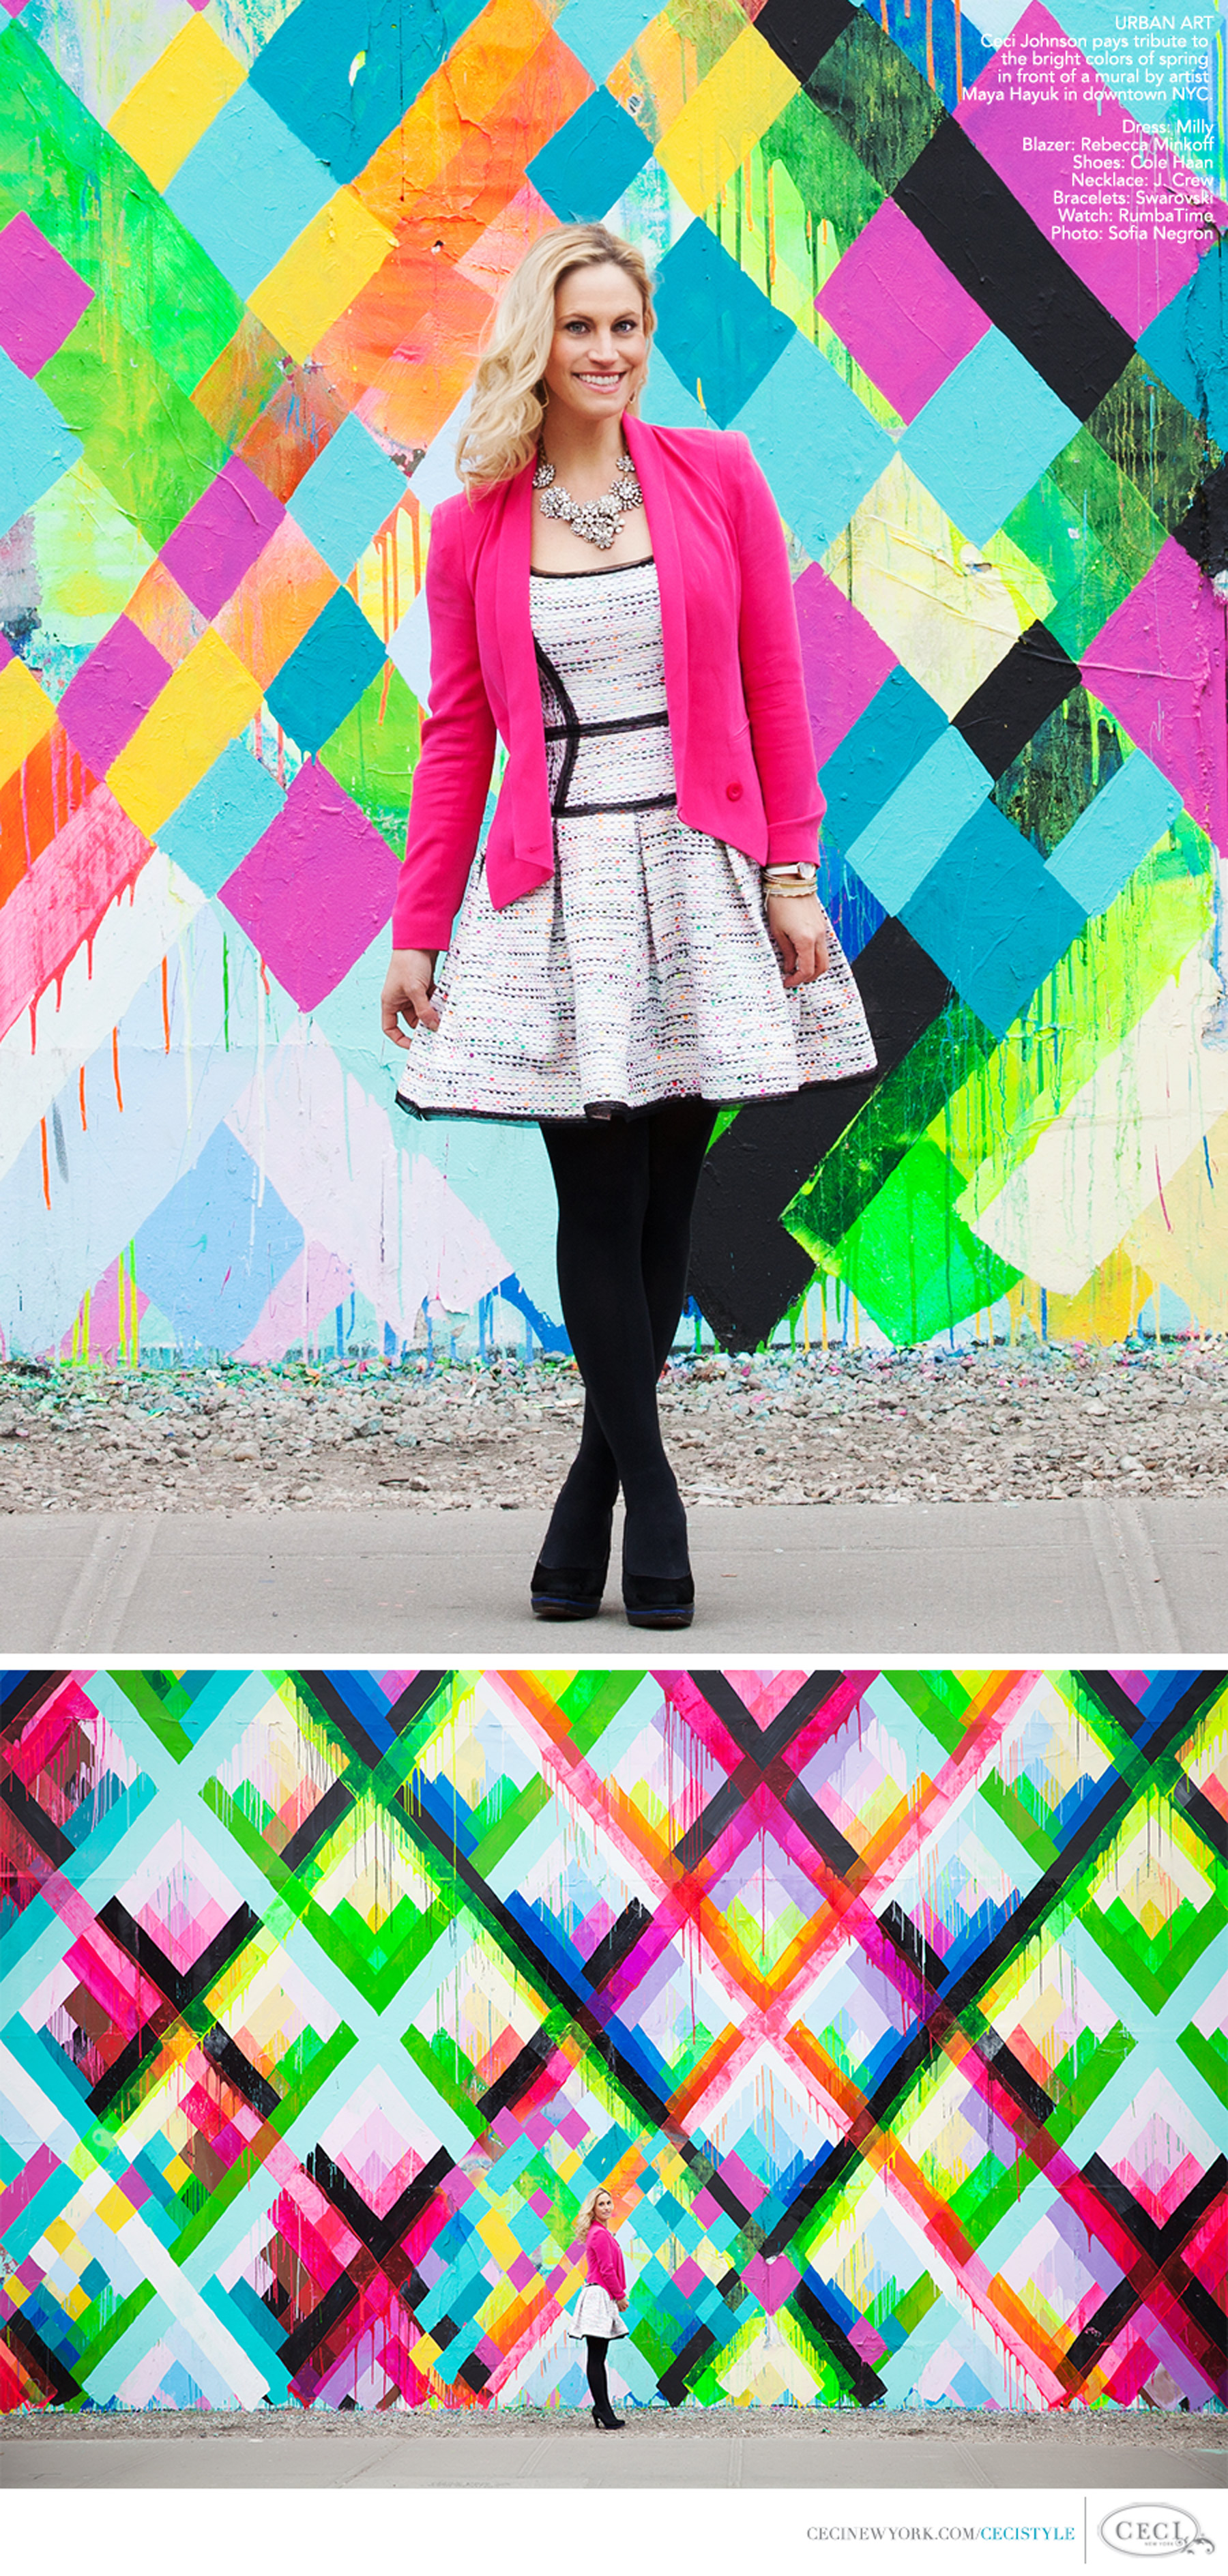 Ceci Johnson of Ceci New York - URBAN ART: Ceci Johnson pays tribute to the bright colors of spring in front of a mural by artist Maya Hayuk in downtown NYC. Photo: Sofia Negron. Dress: Milly. Blazer: Rebecca Minkoff. Shoes: Cole Haan. Necklace: J. Crew. Bracelets: Swarovski. Watch: RumbaTime.